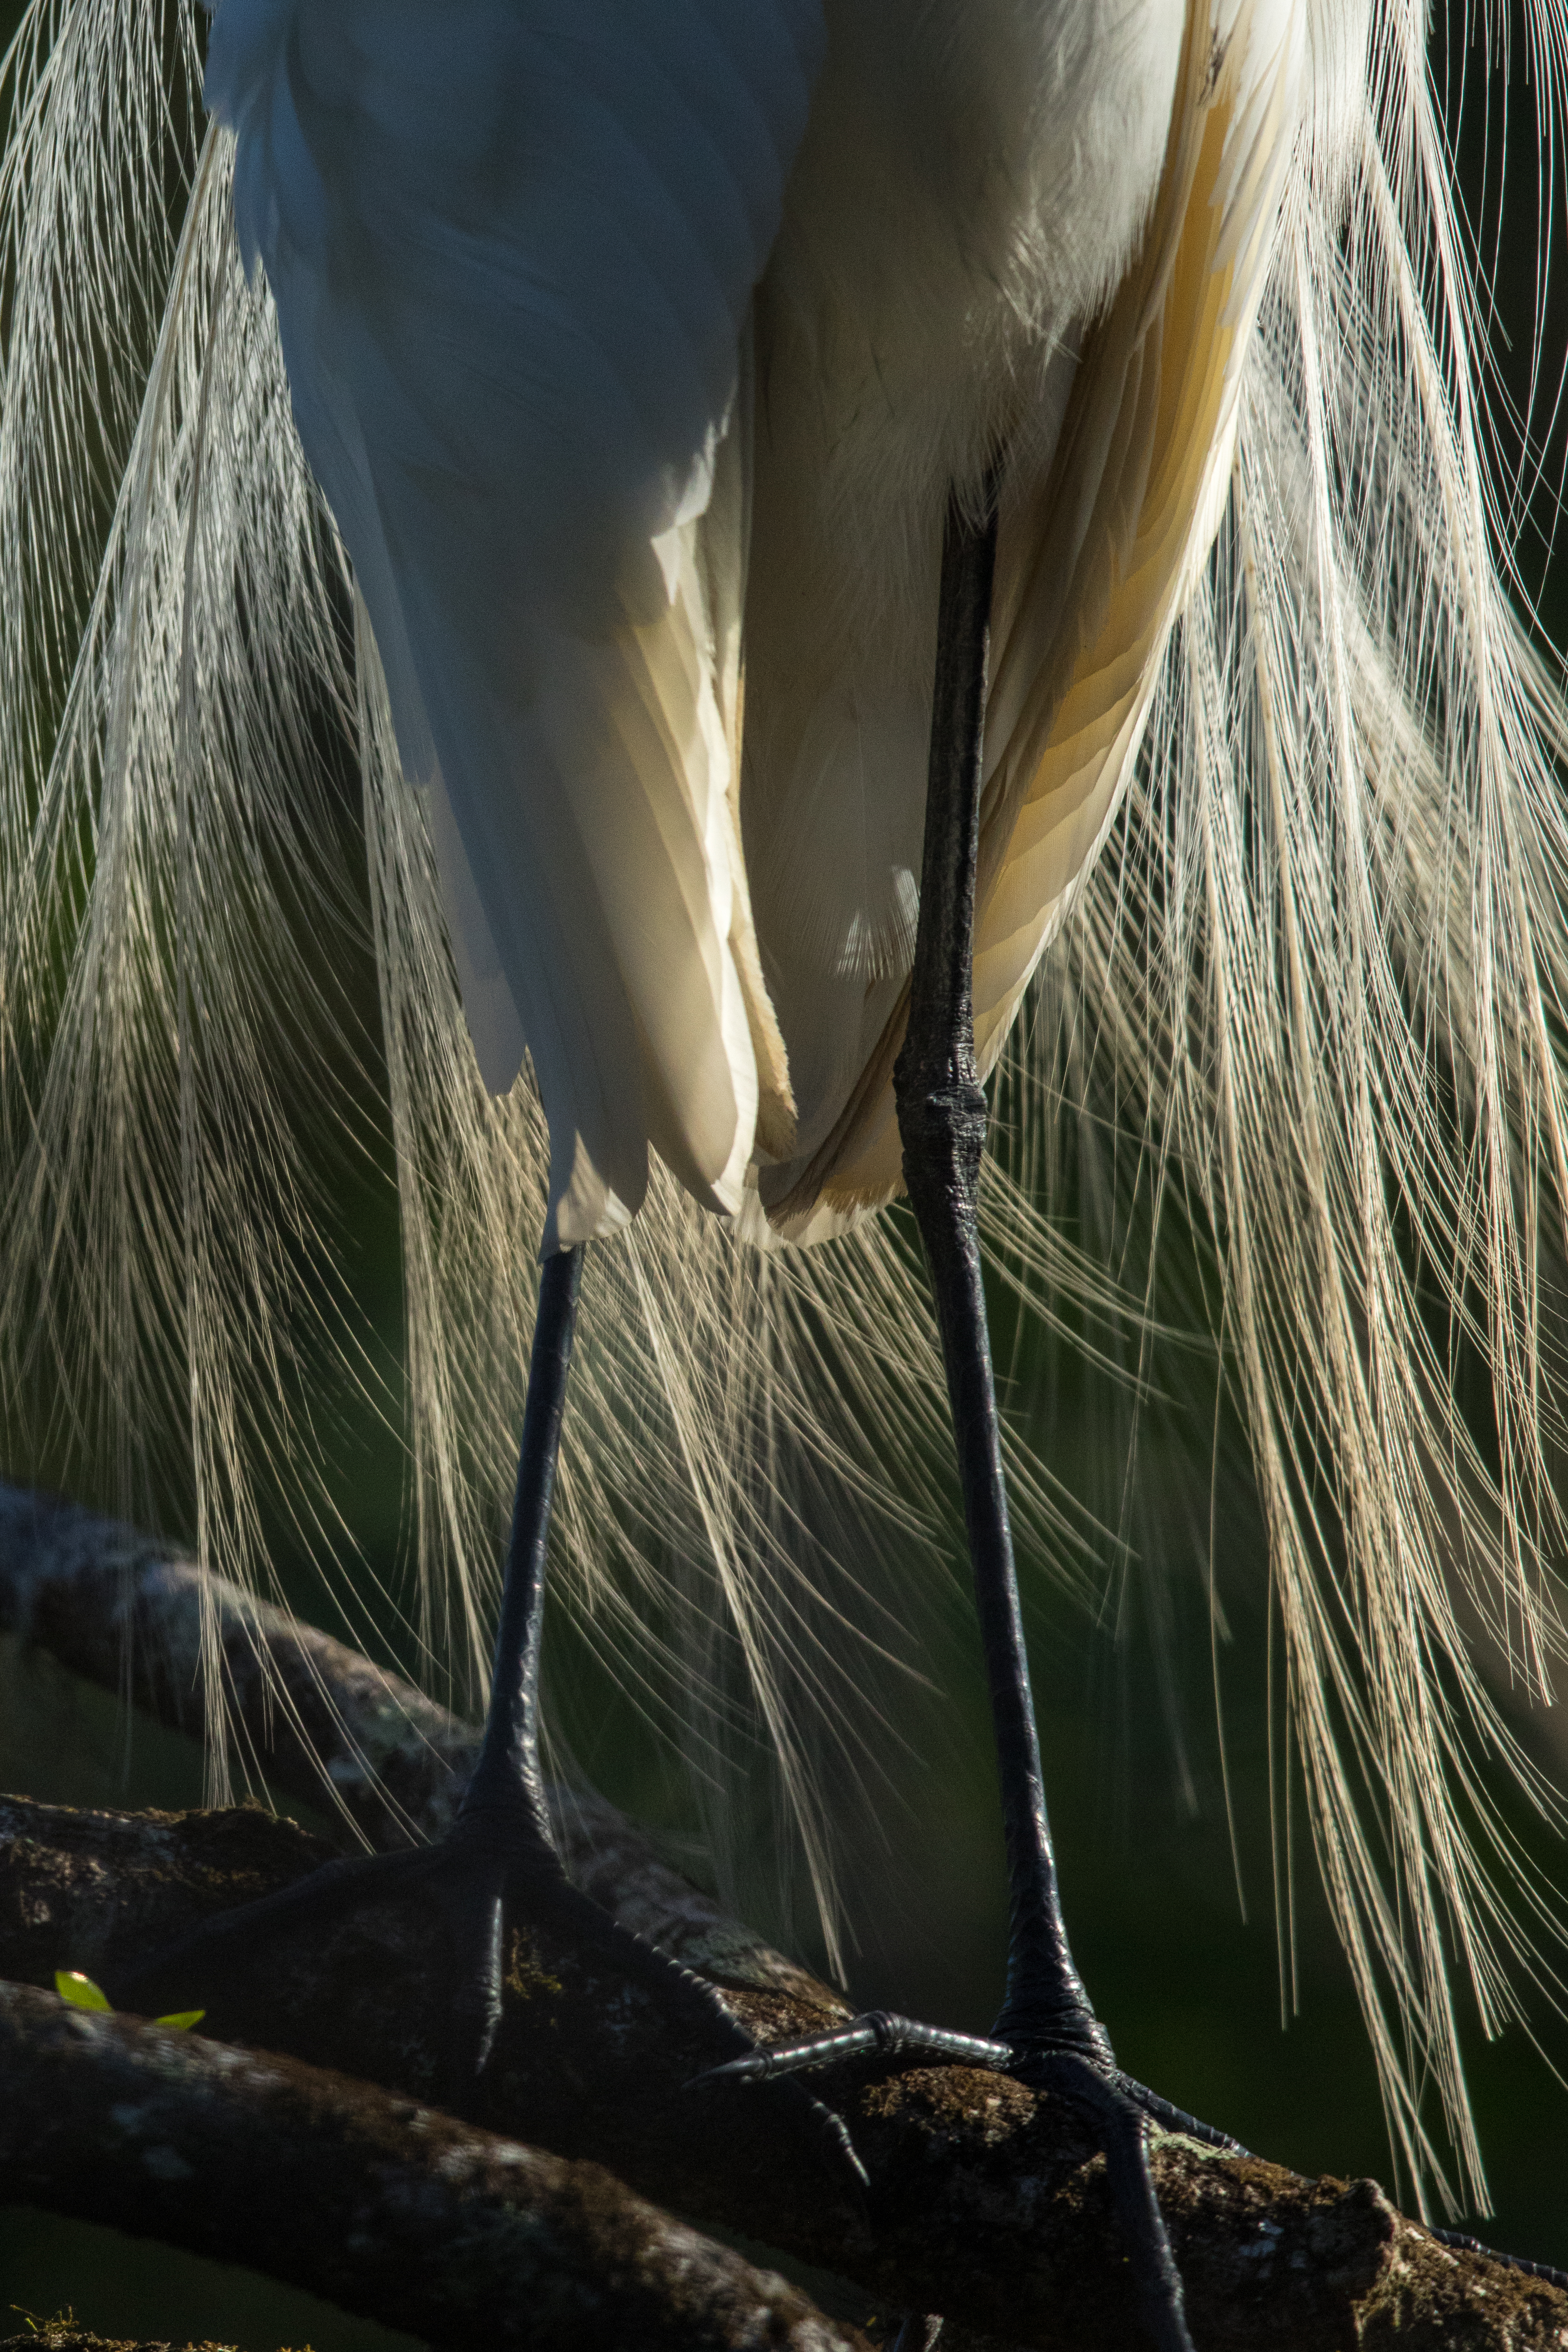 The wispy breeding plumage of a great egret is backlit by a rising sun in Audubon's Corkscrew Swamp Sanctuary. Because of the swamp's pockets of deep water, birds come from around the watershed to forage for fish here during the dry season. Photograph by Mac Stone